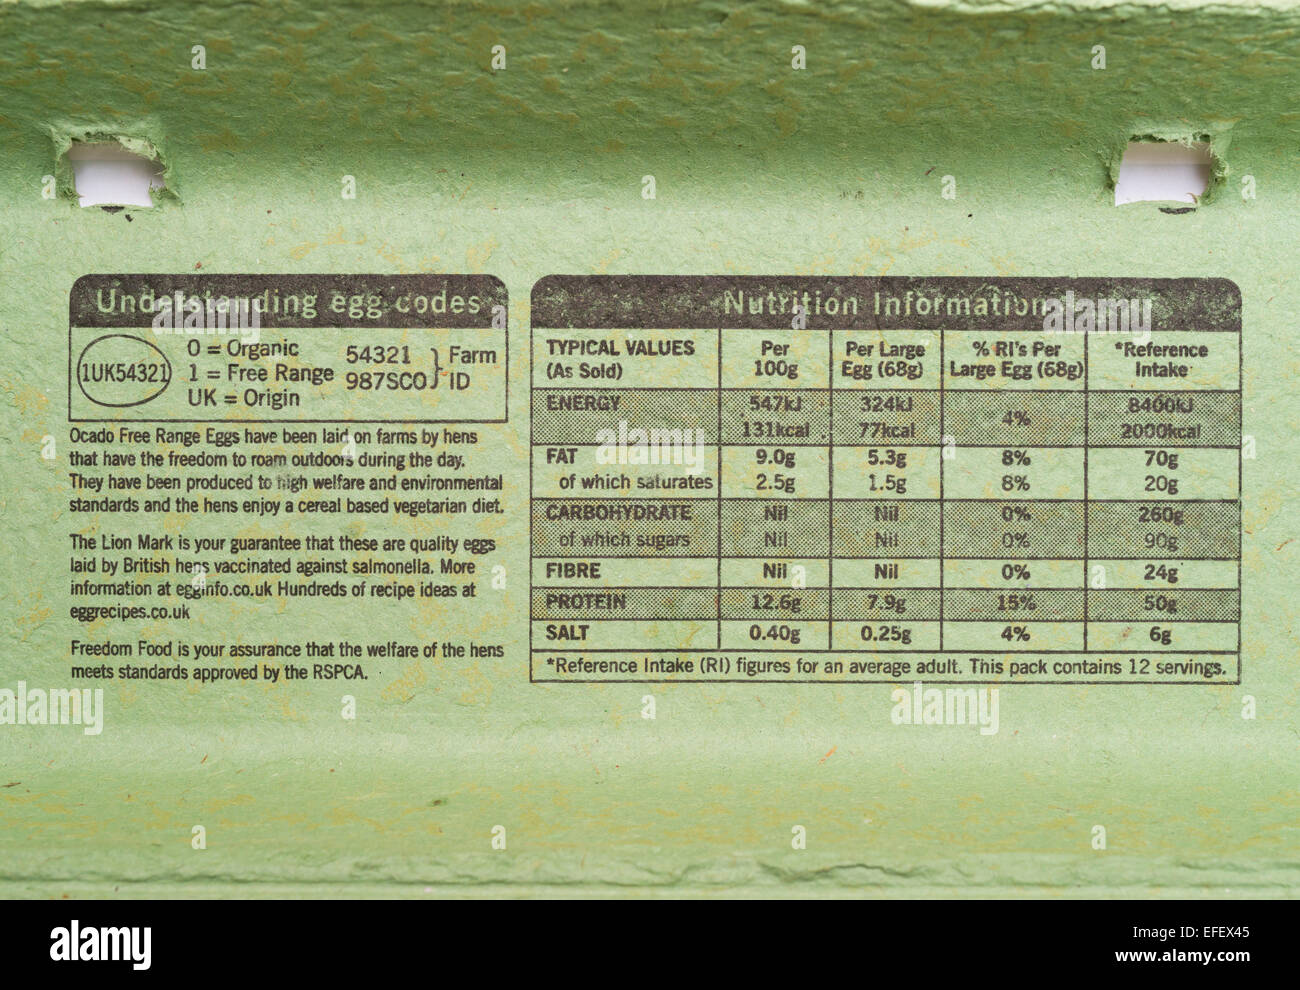 Nutritional information on an egg box. - Stock Image